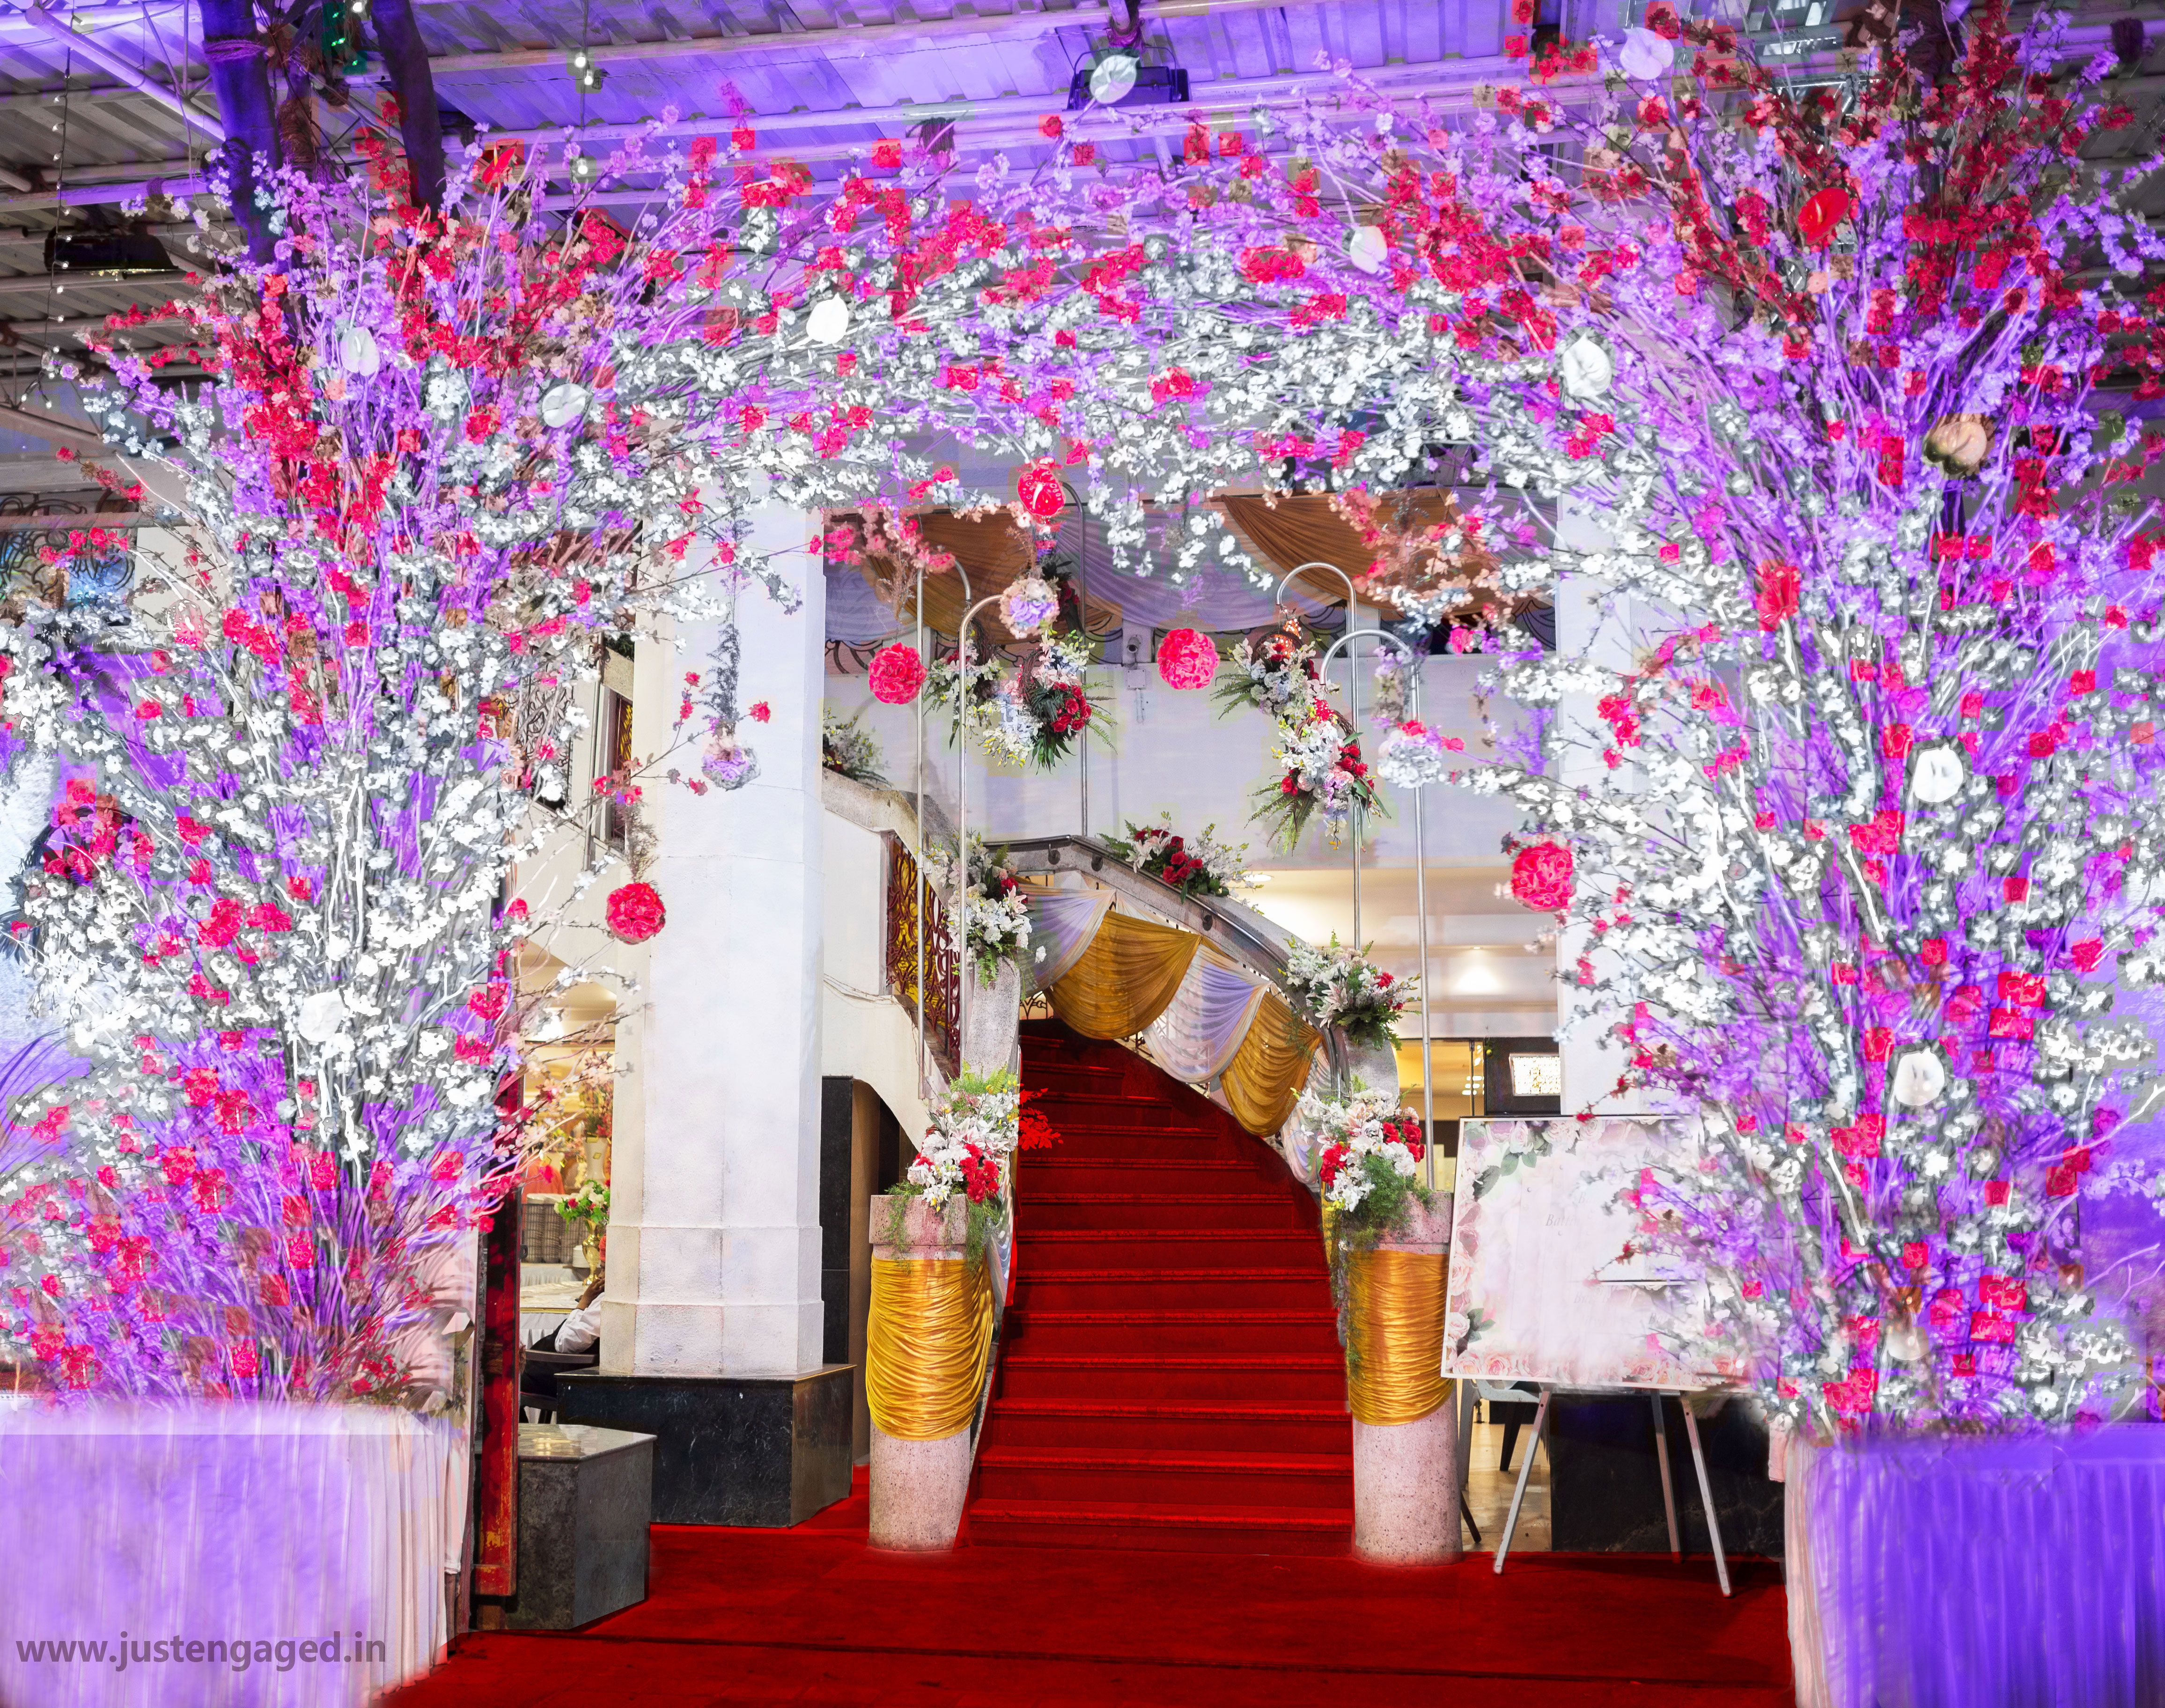 Wedding decor by just engaged team at a recent wedding in mumbai wedding decor by just engaged team at a recent wedding in mumbai for more information junglespirit Images